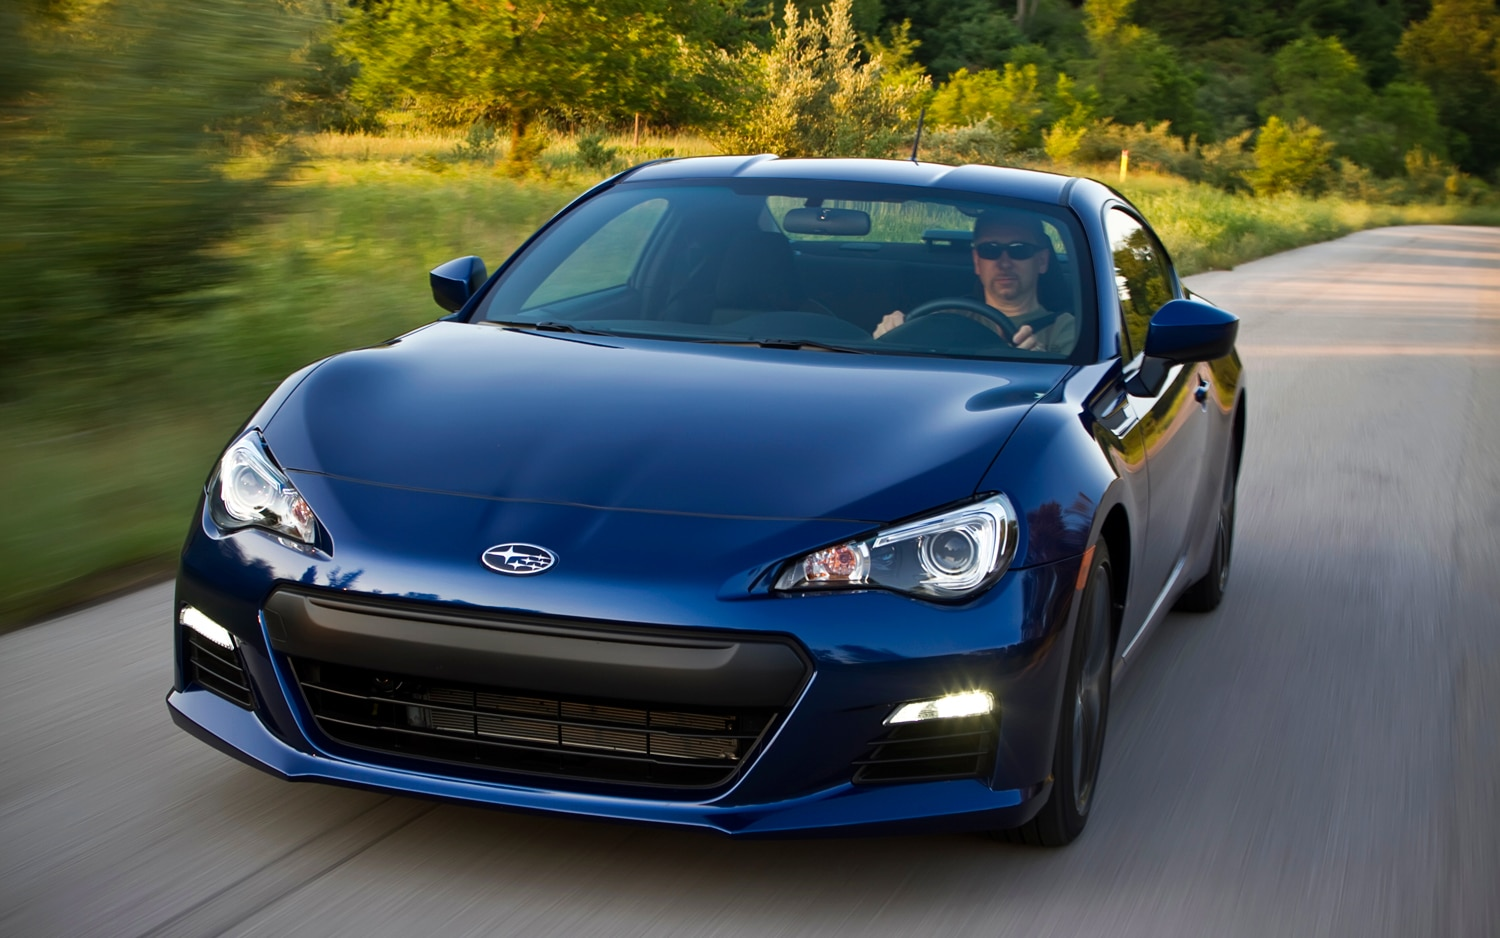 2013 Subaru BRZ Front Left View1